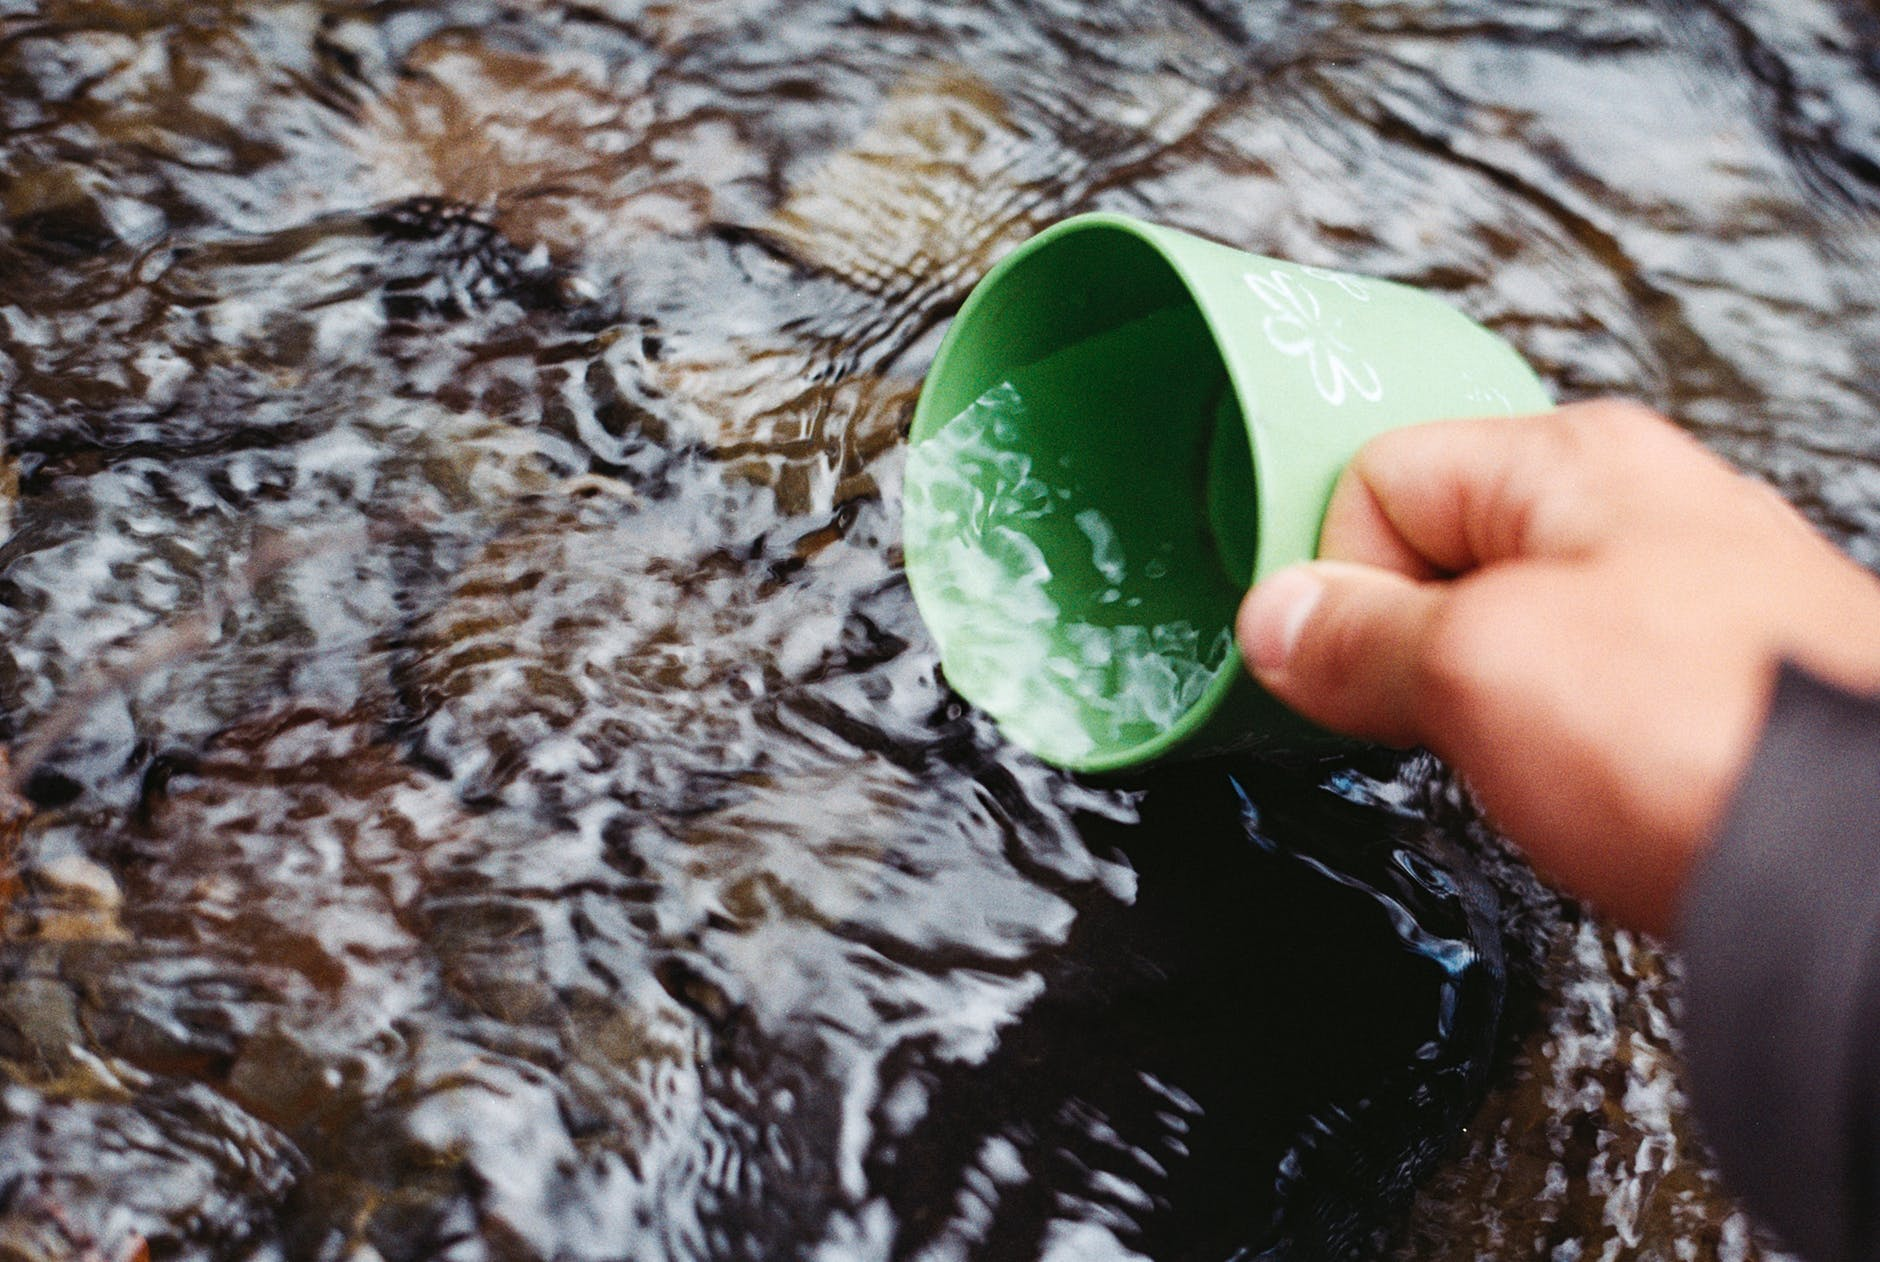 A person filling a cup with water from a mountain stream